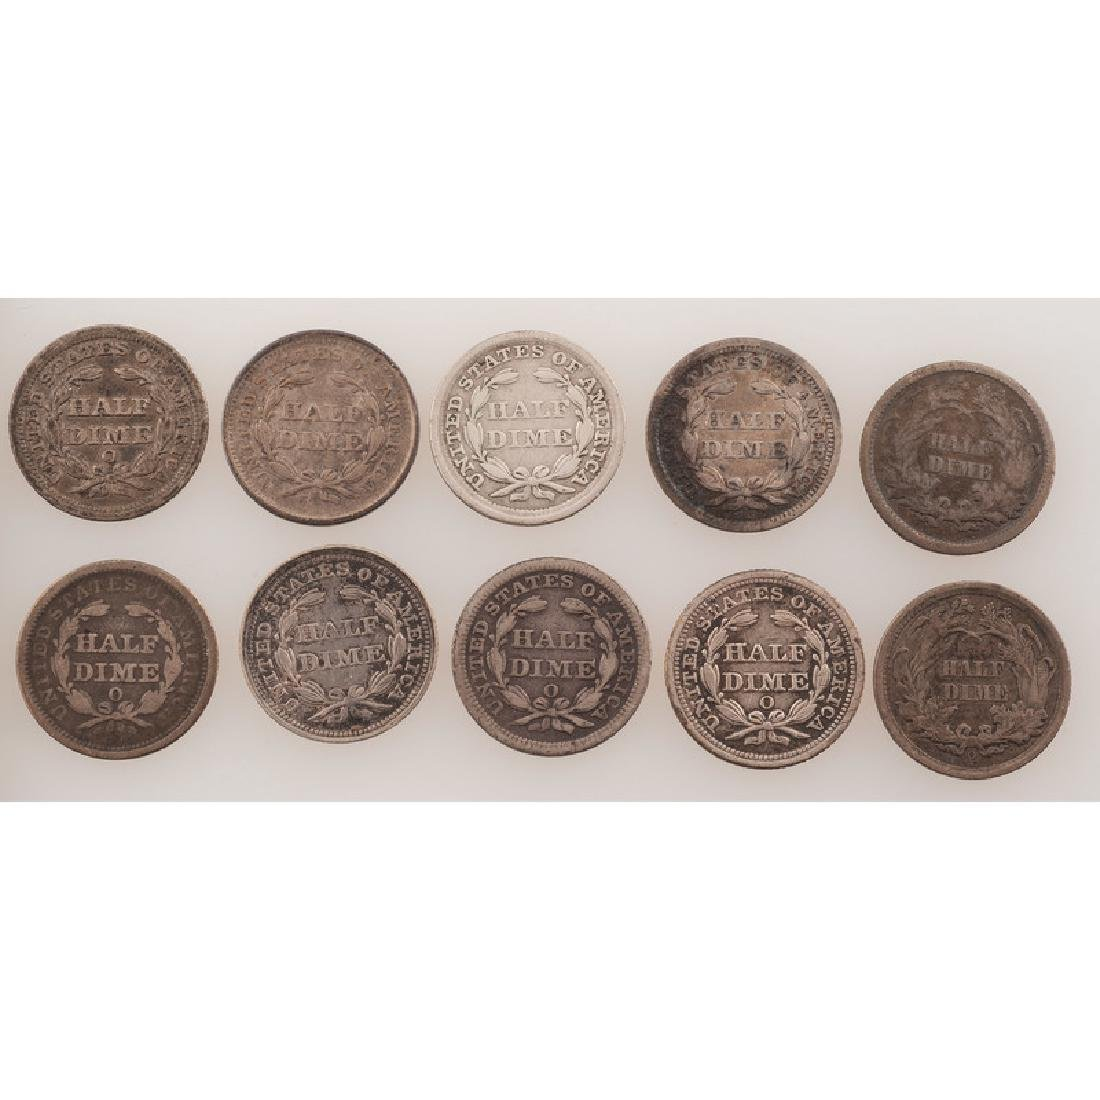 United States Liberty Seated Half Dimes 1856-1860 - 2